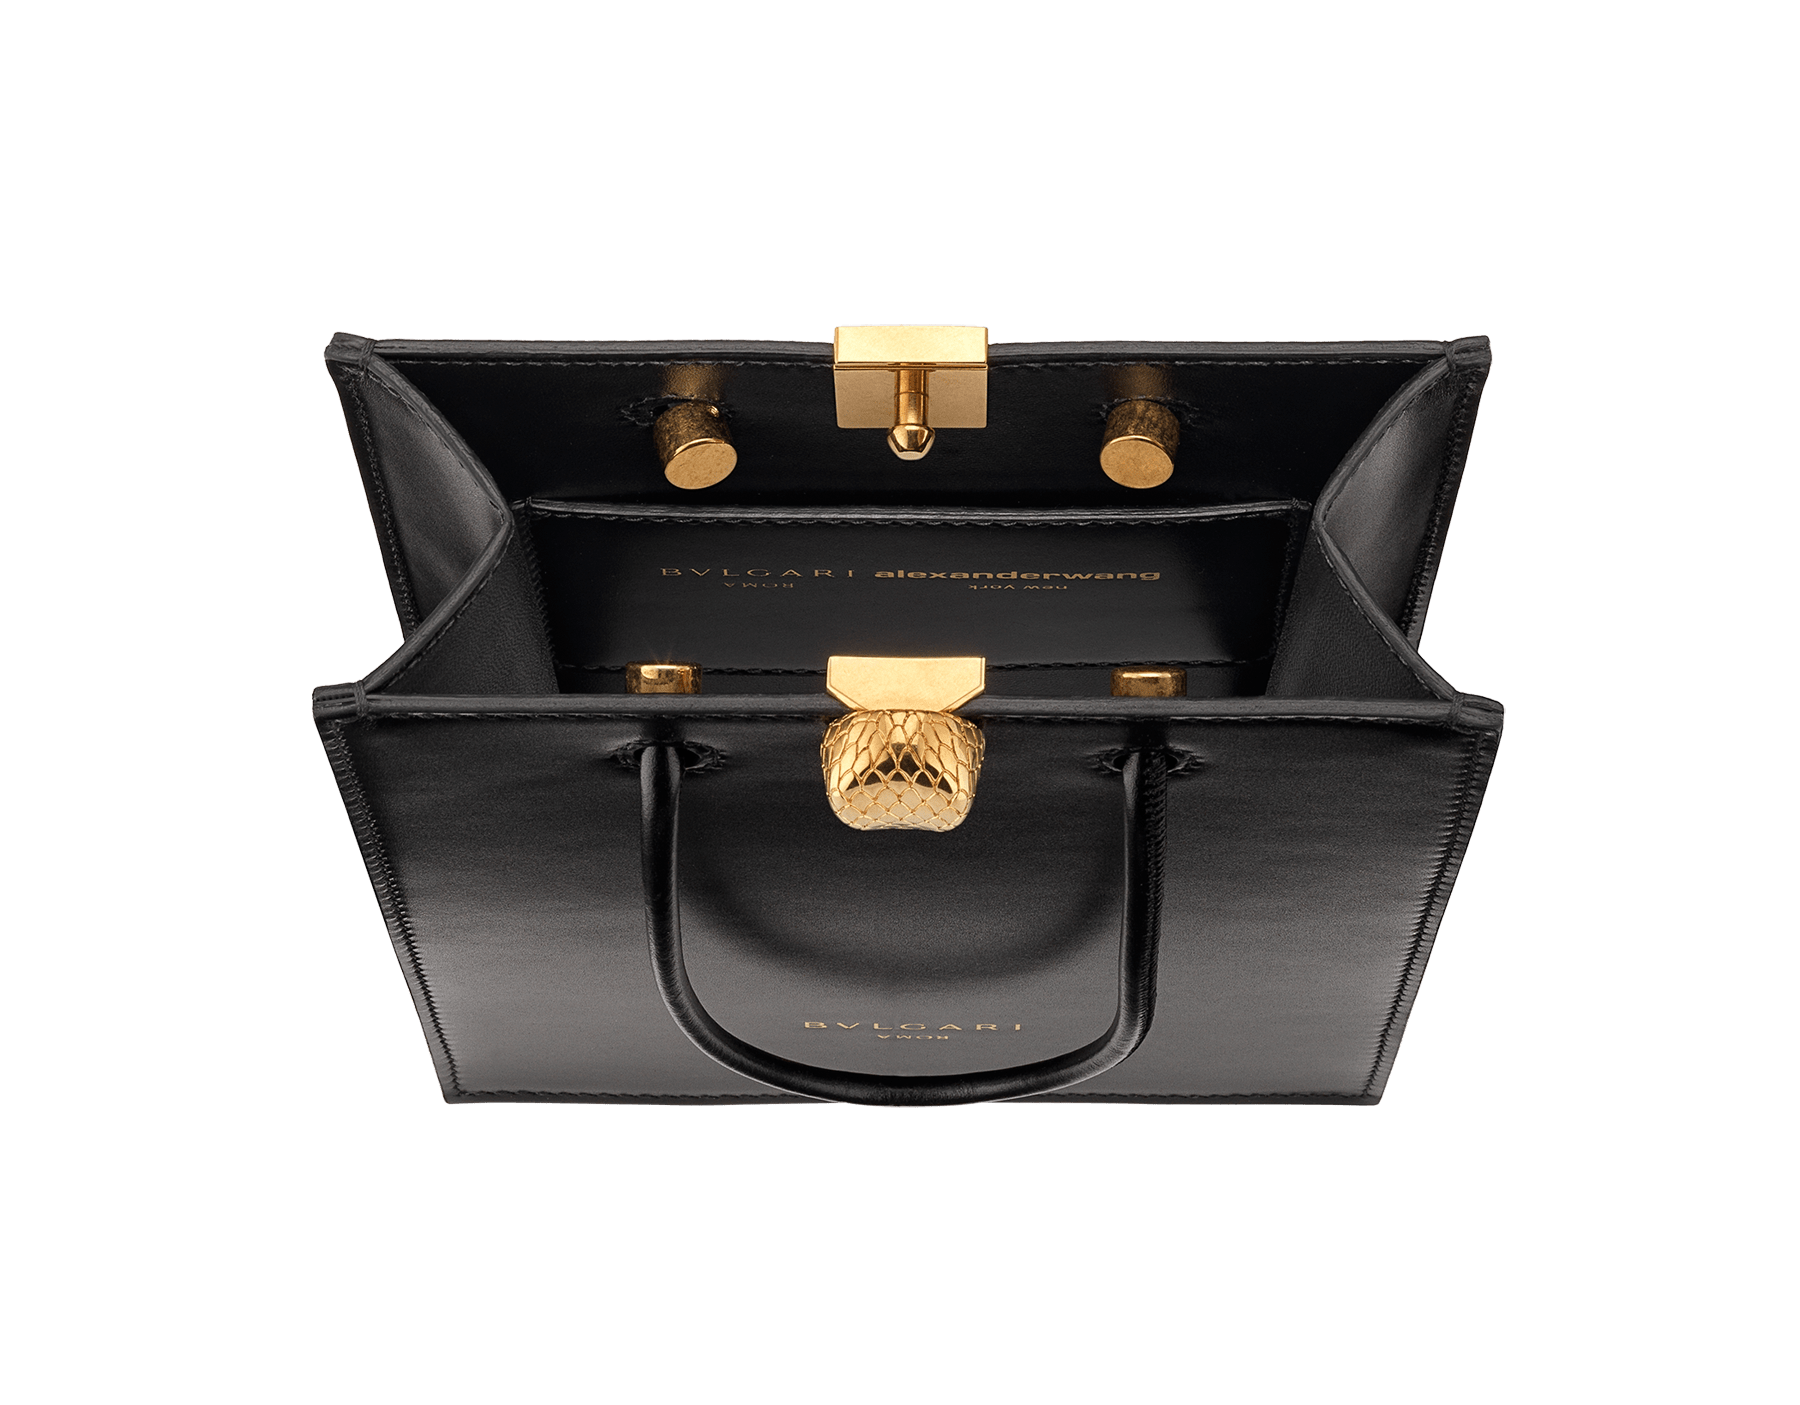 Alexander Wang x Bvlgari mini shopping tote bag in black smooth calf leather. New Serpenti head closure in antique gold plated brass with tempting red enamel eyes. Limited edition. 288726 image 4